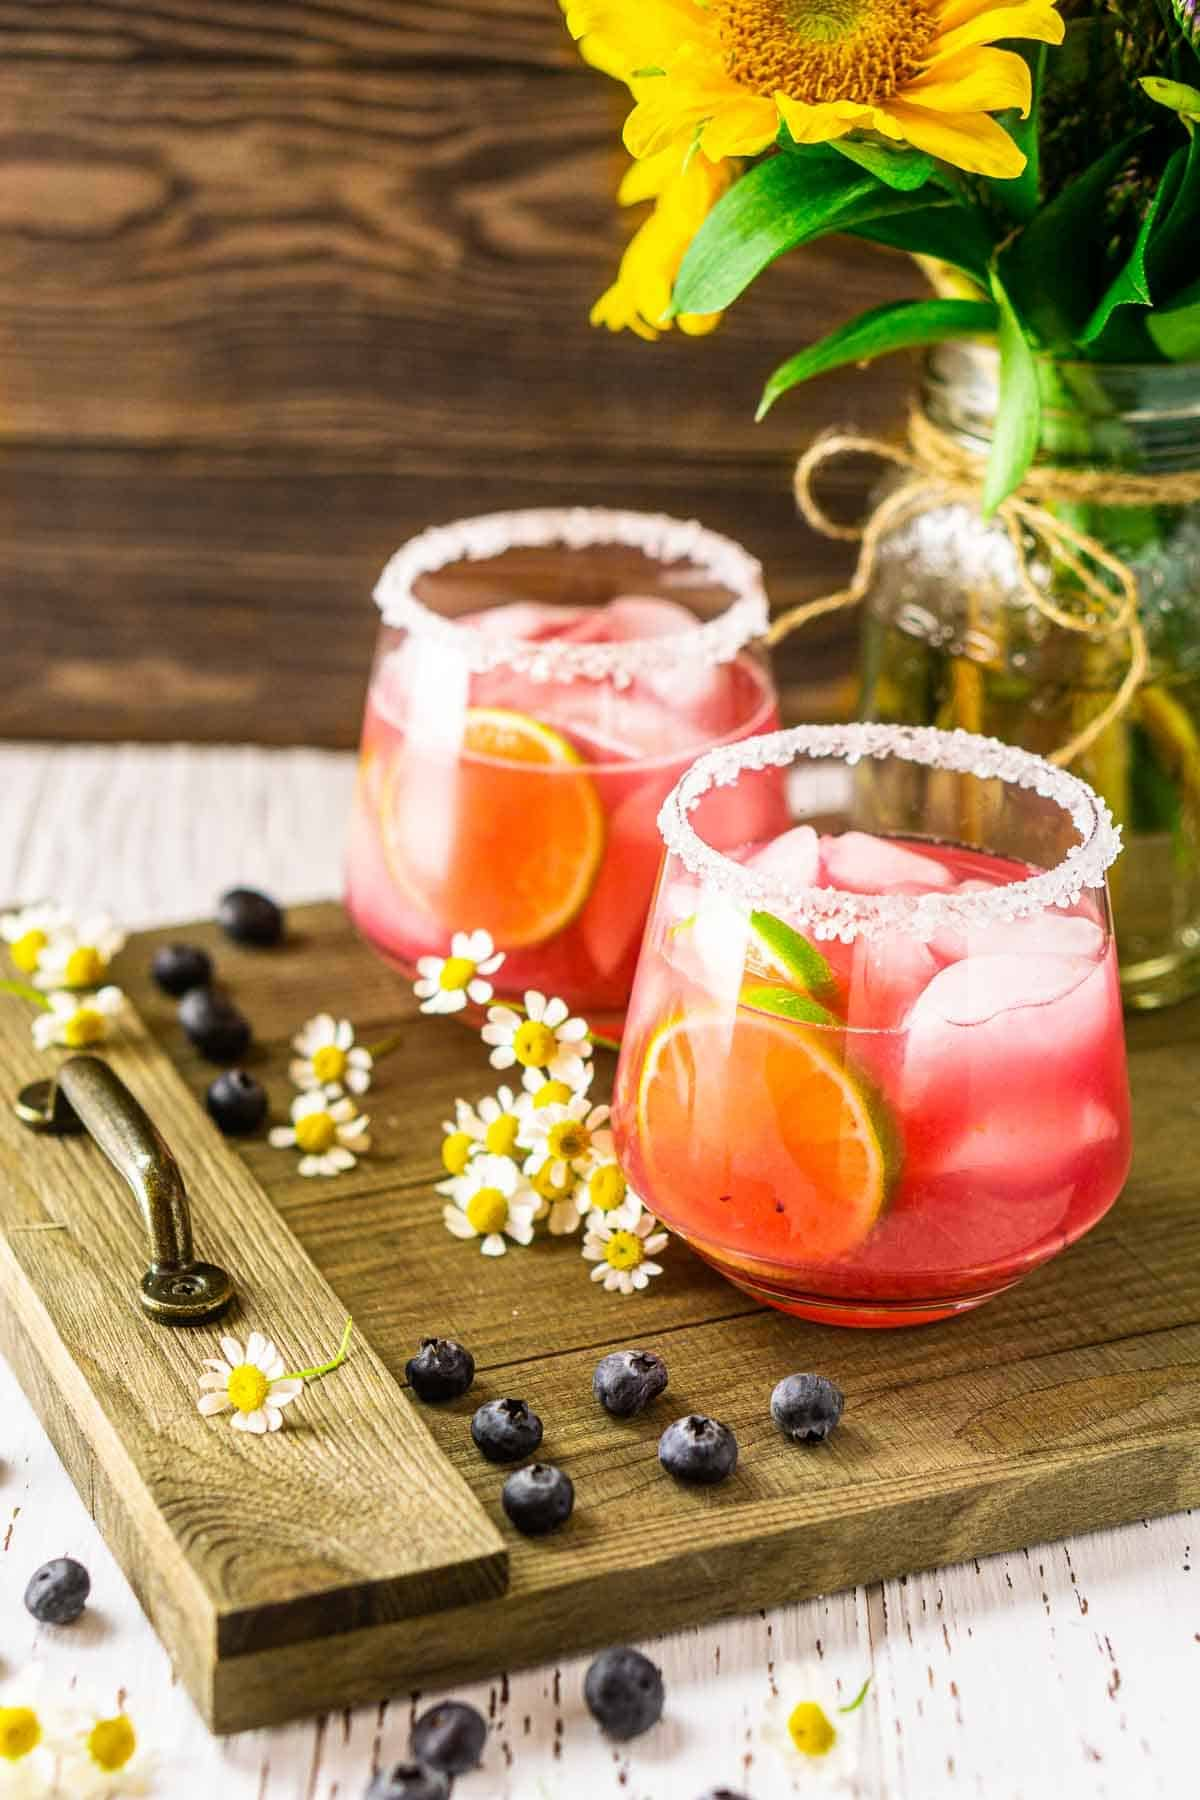 Looking down on two blueberry margaritas with flowers and blueberries around it.